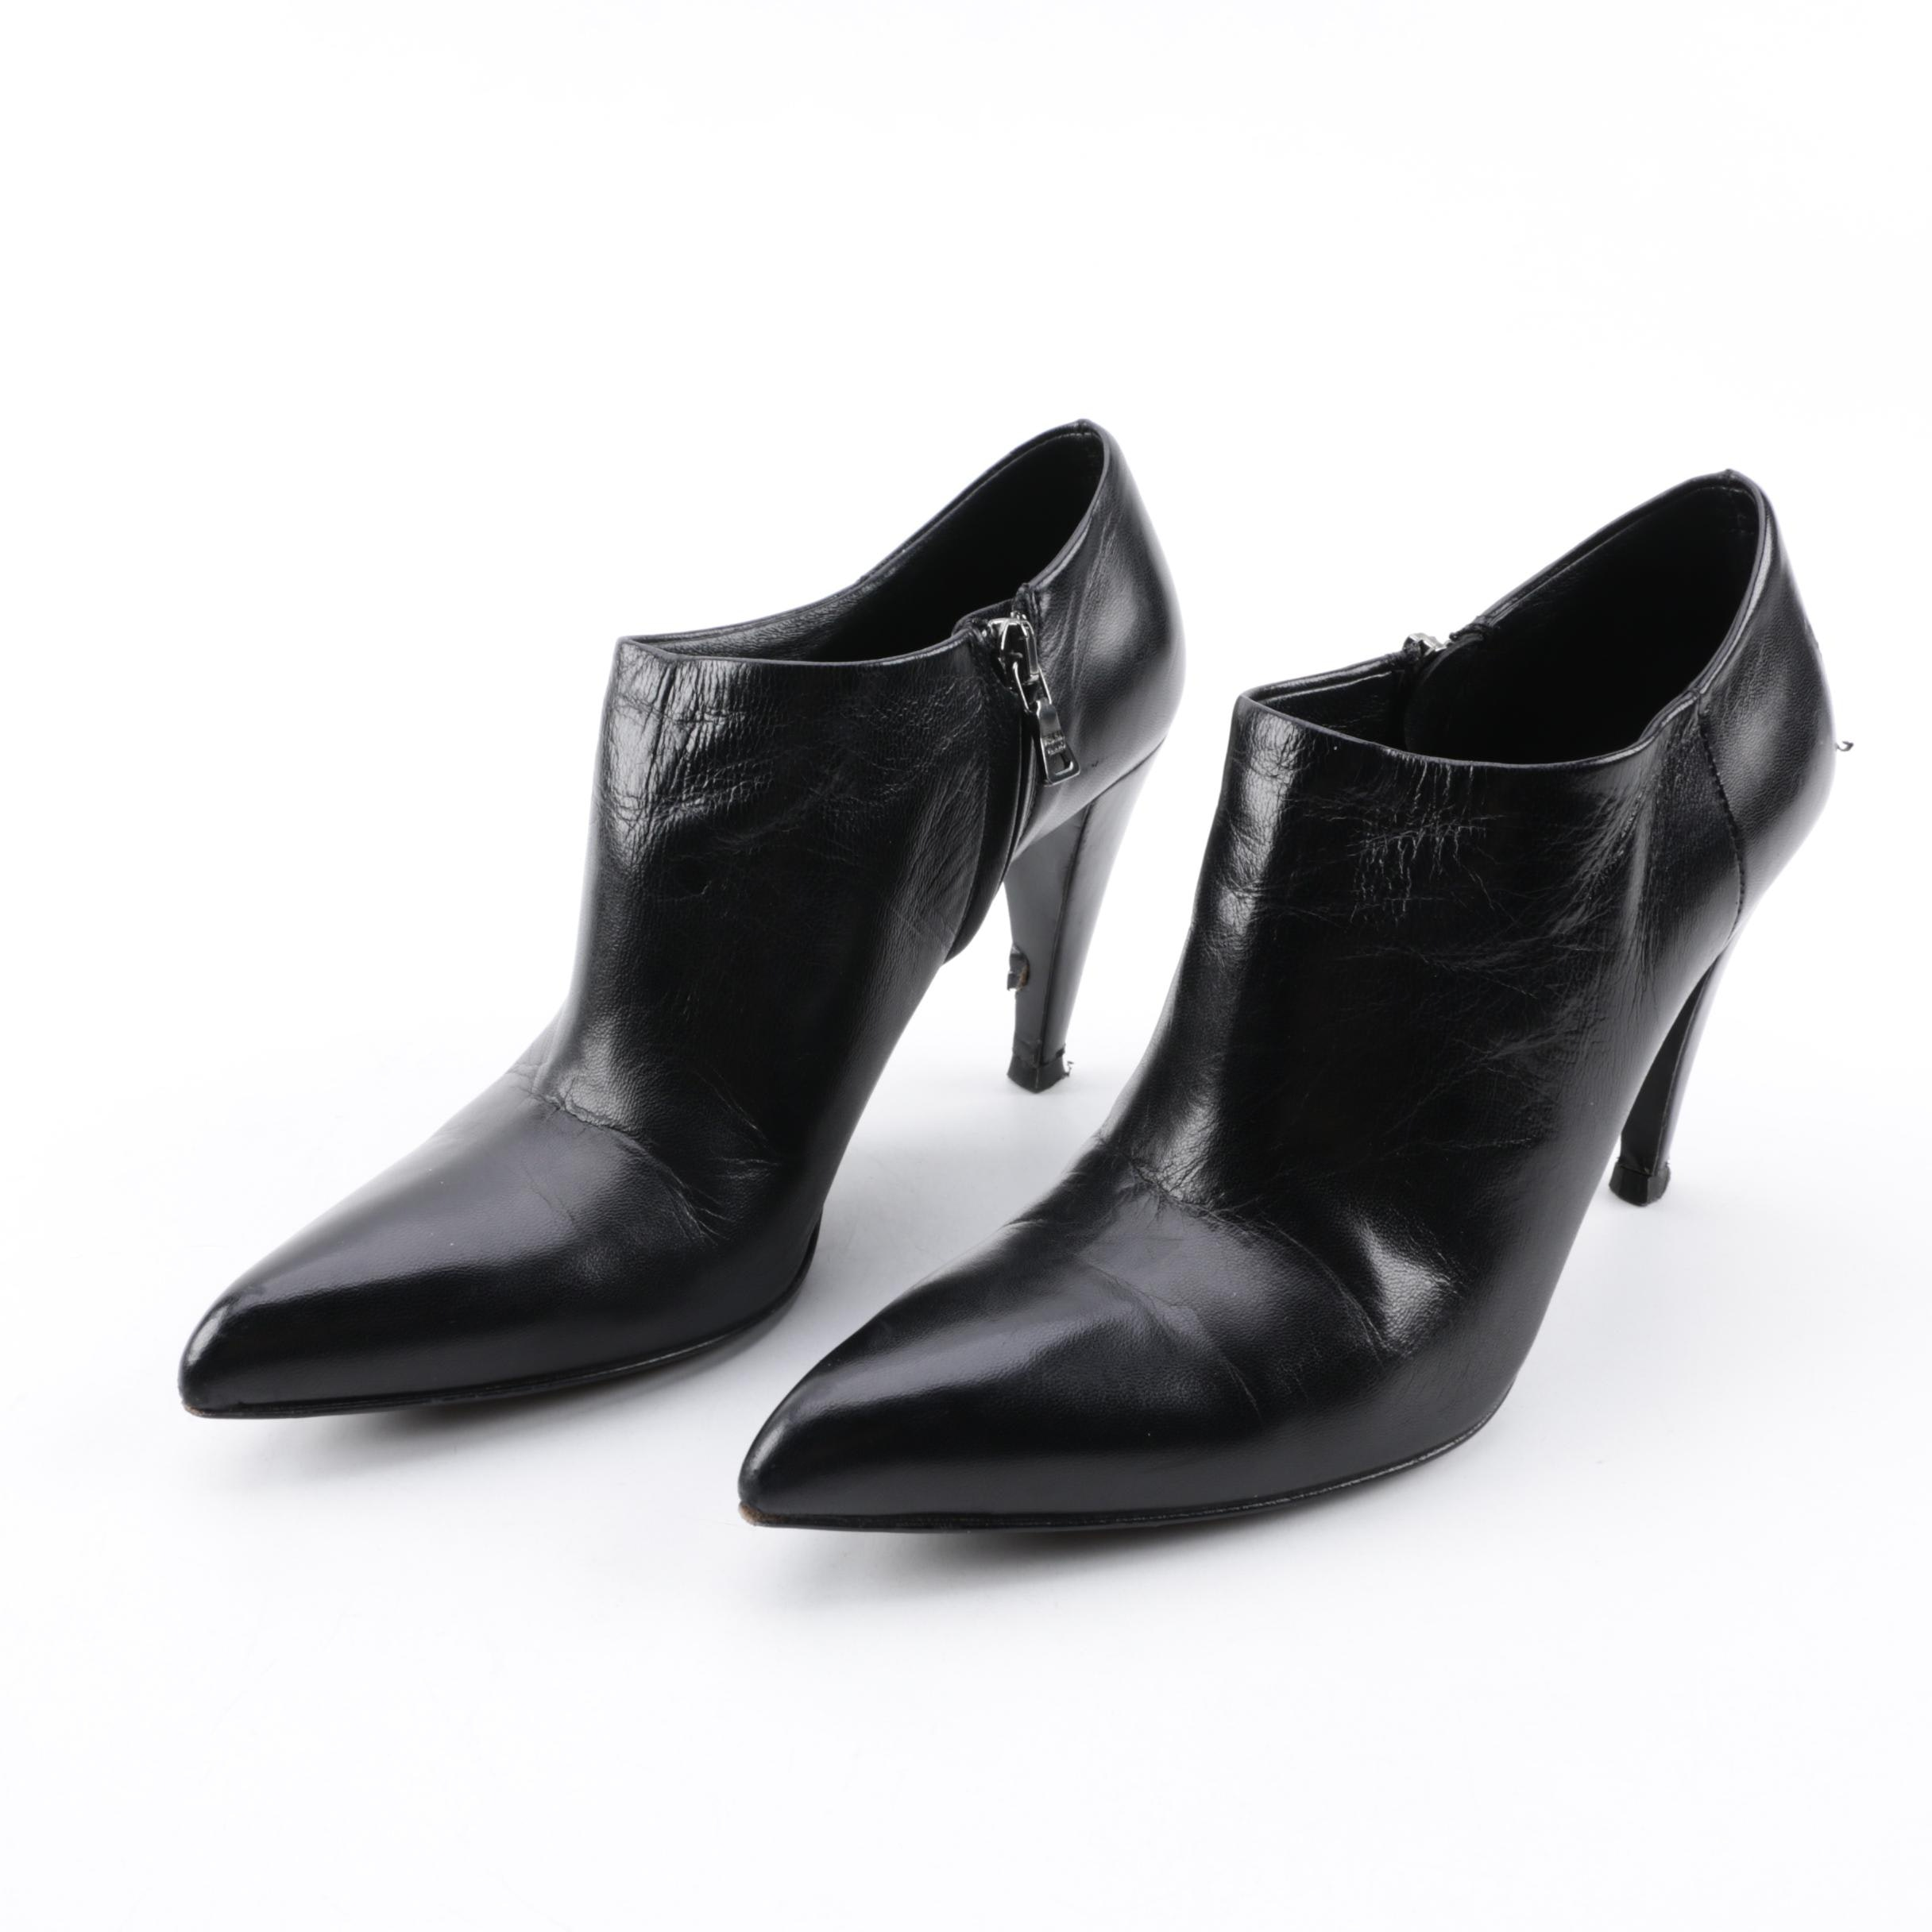 Women's Prada Calzature Donna Black Leather Pointed Toe Booties